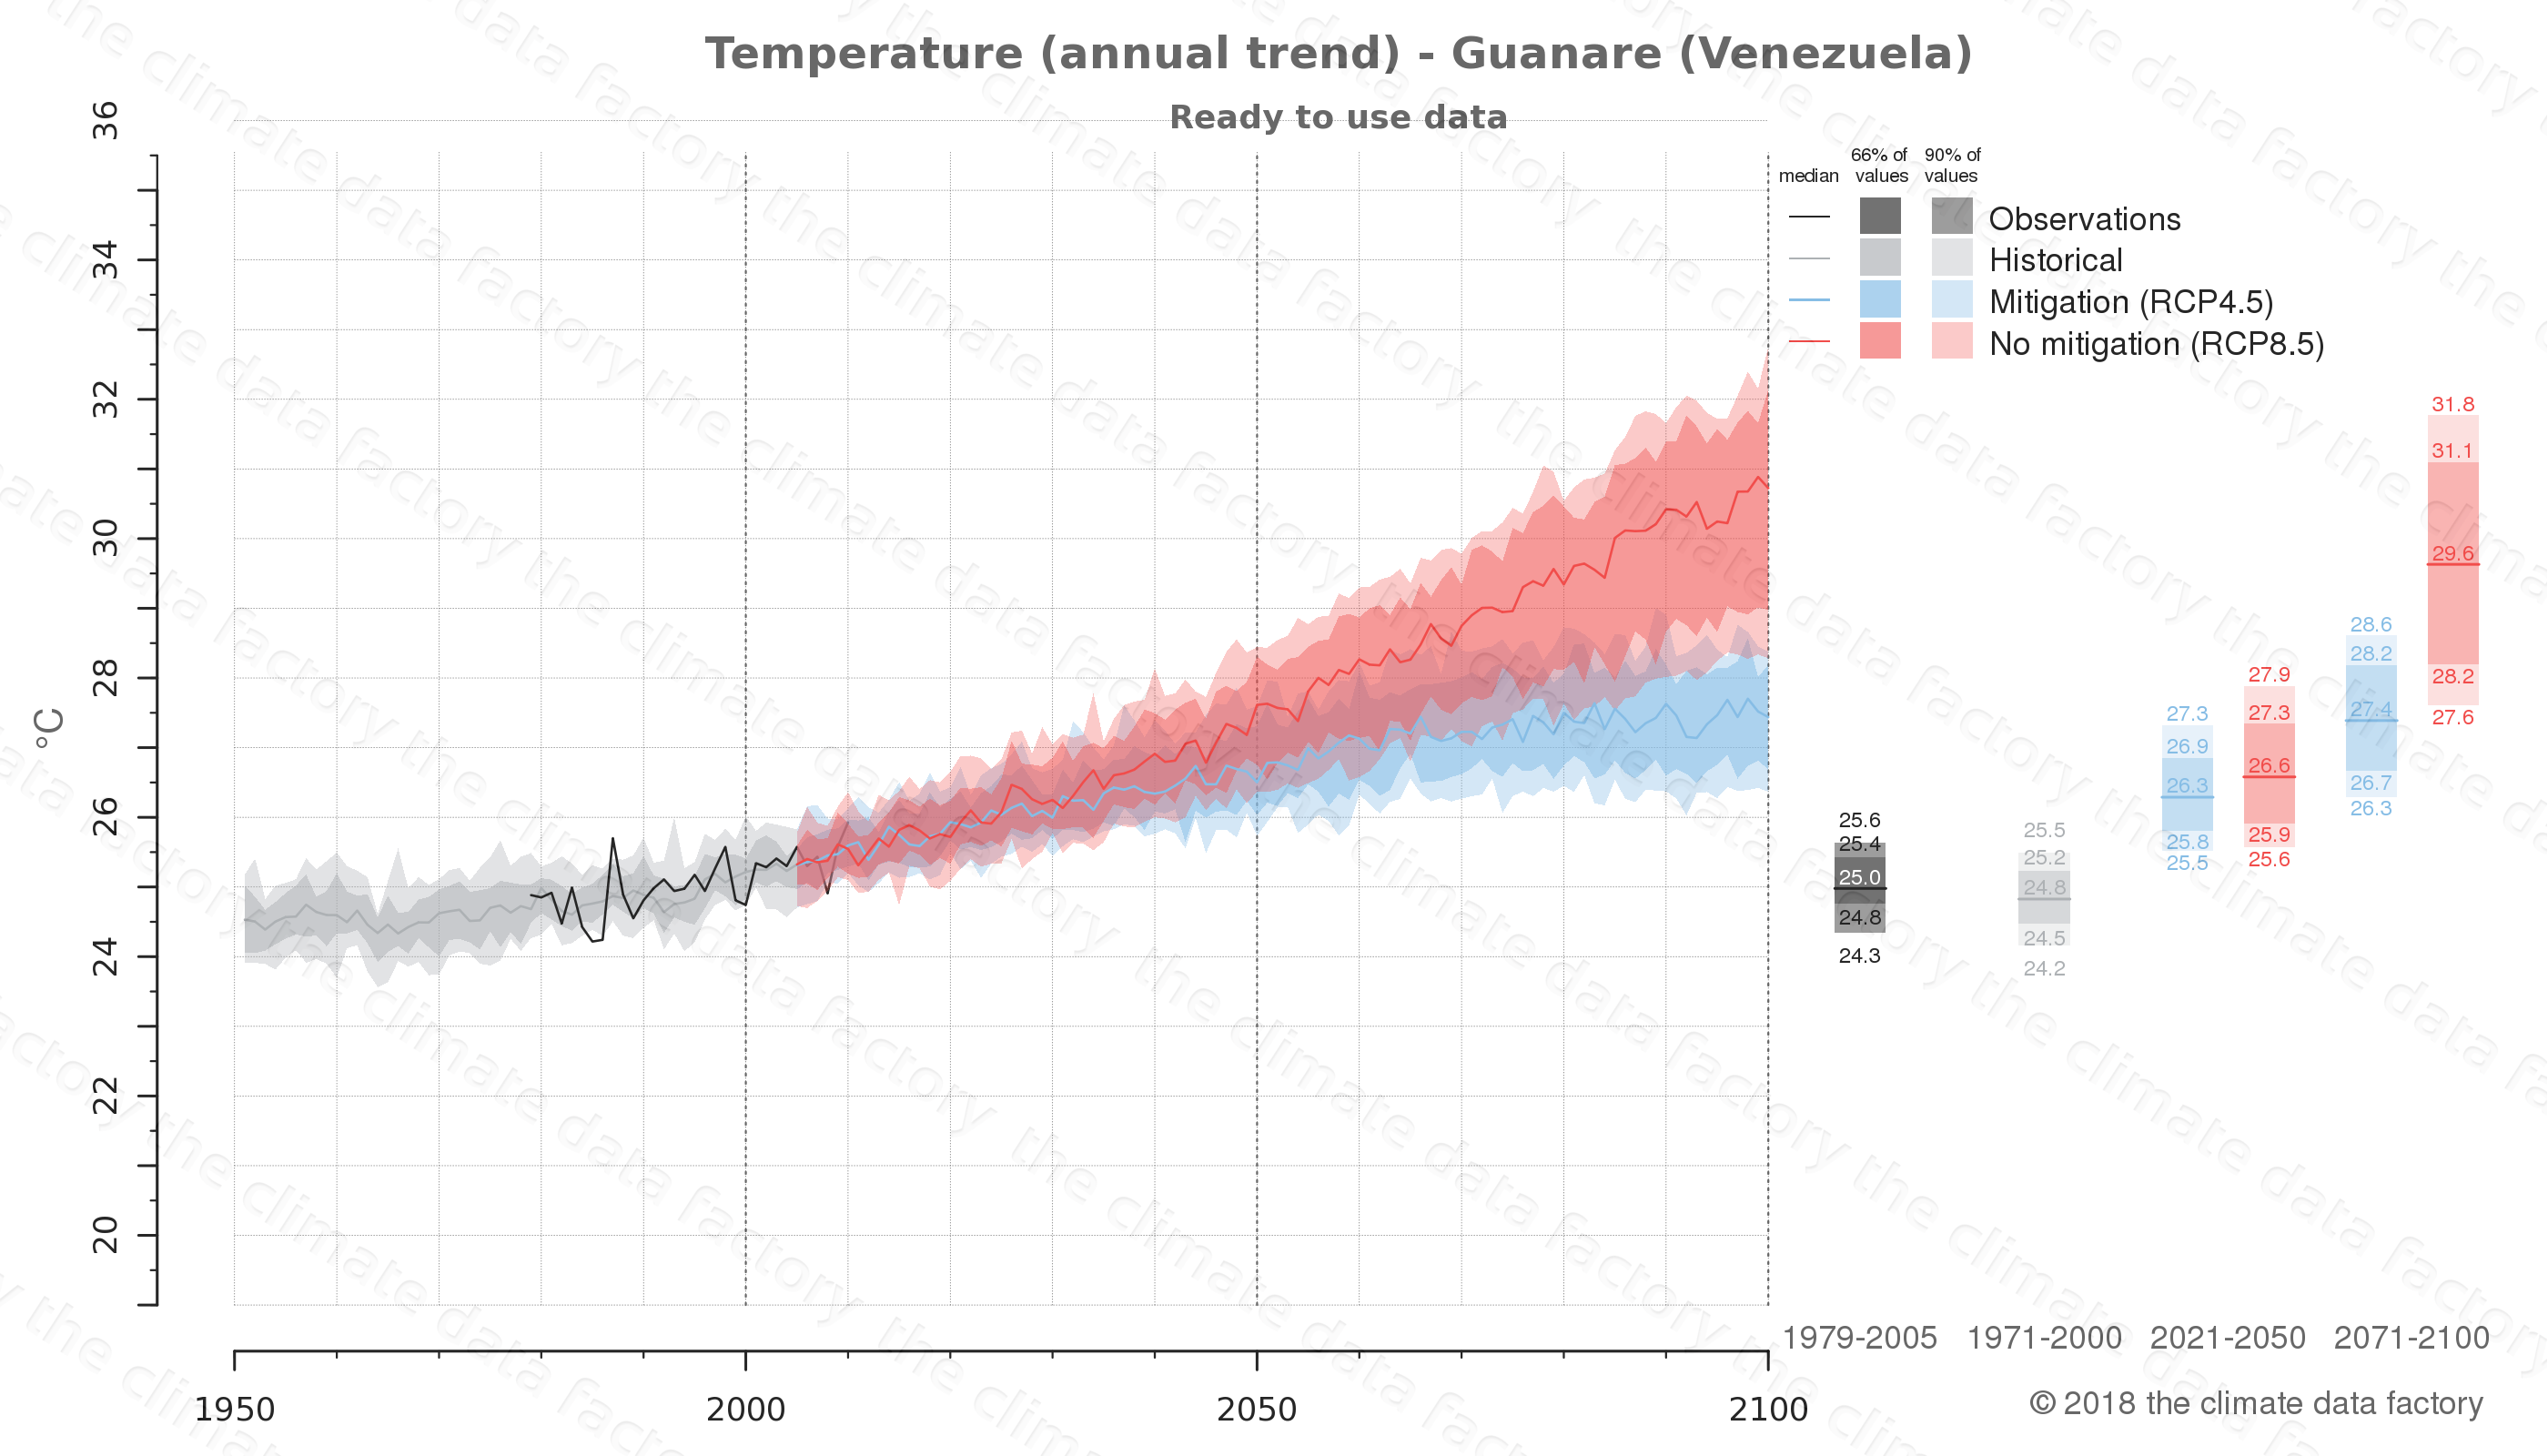 climate change data policy adaptation climate graph city data temperature guanare venezuela